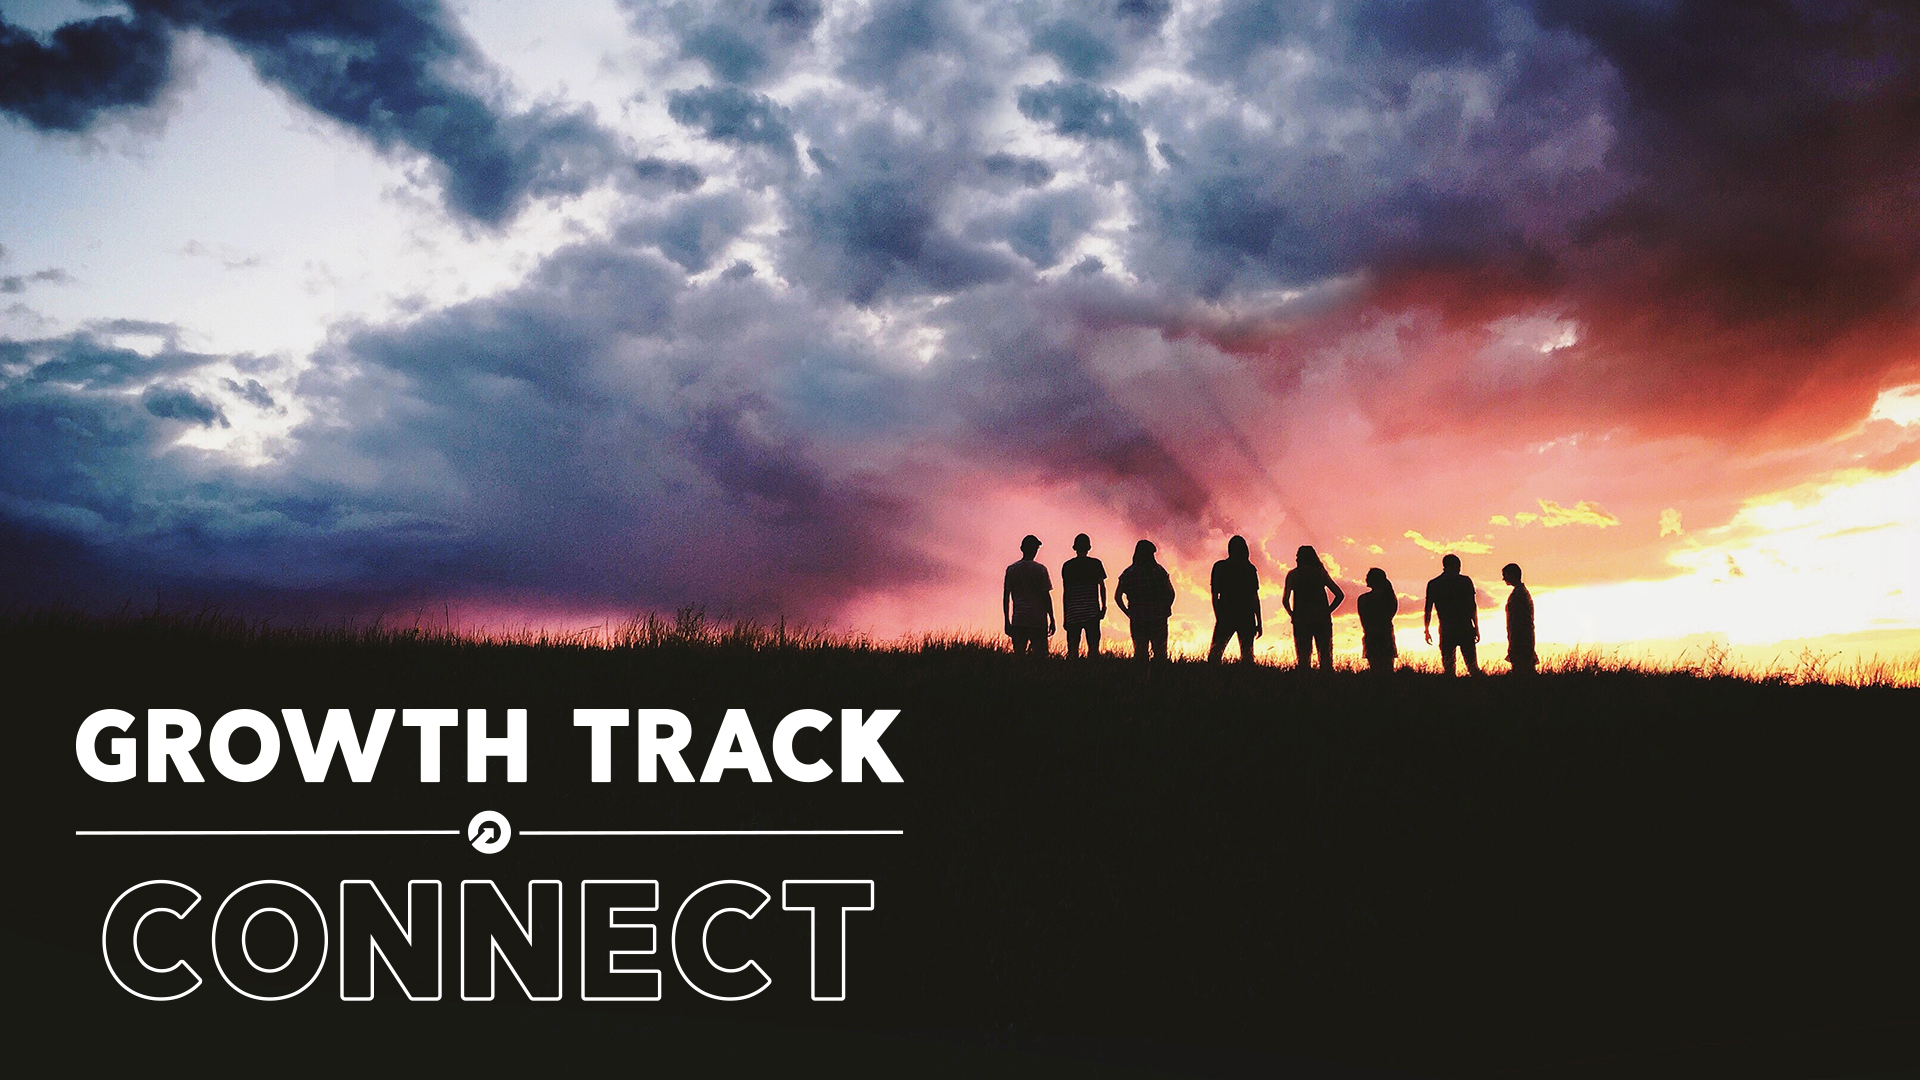 Gt connect title card 1920x1080